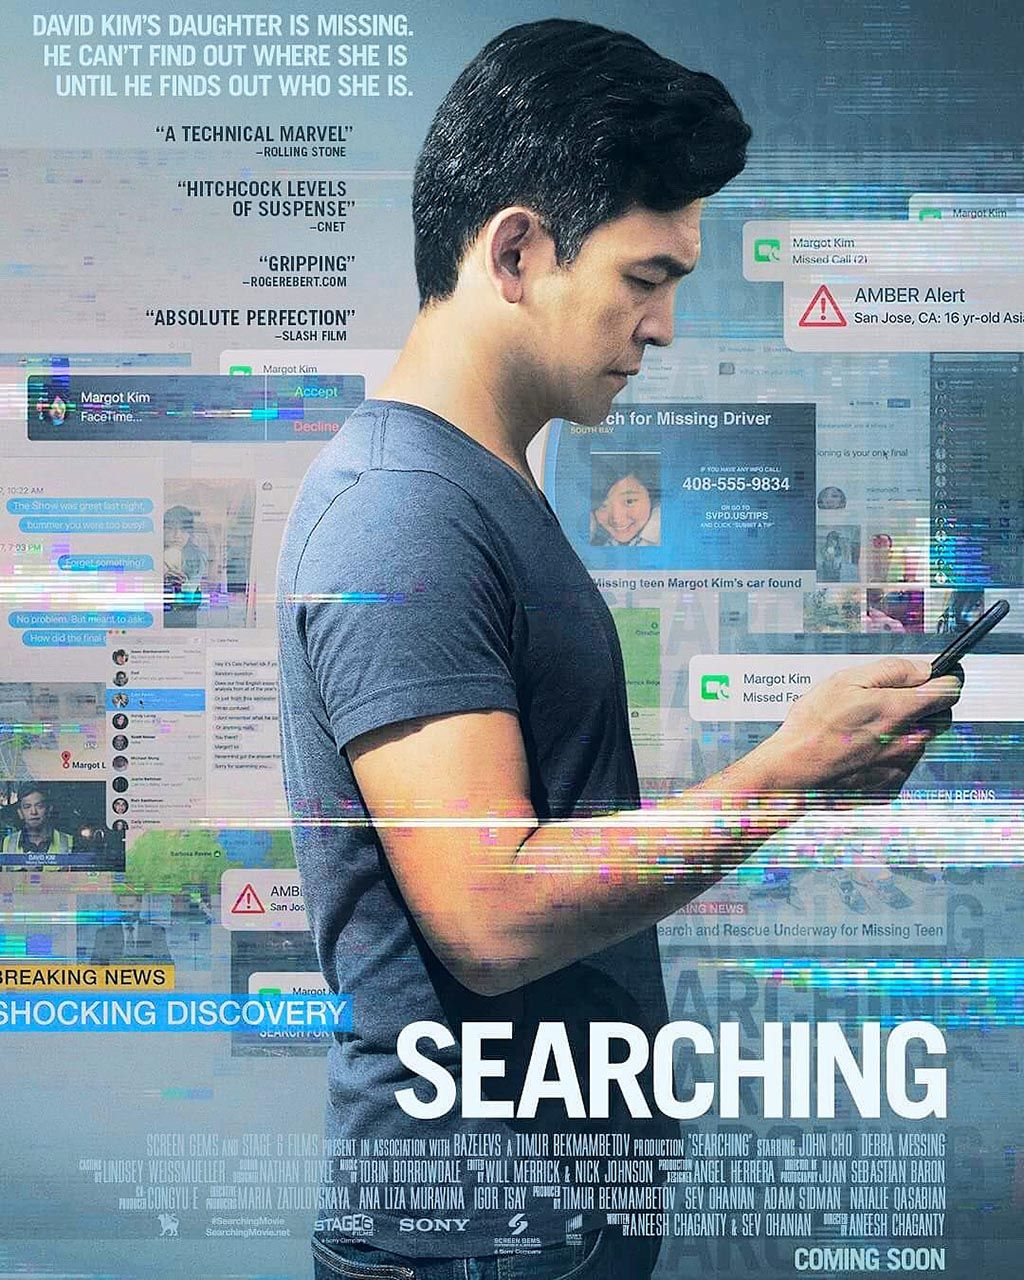 E7ahran On Twitter Free Movies Online Full Movies Movies Online